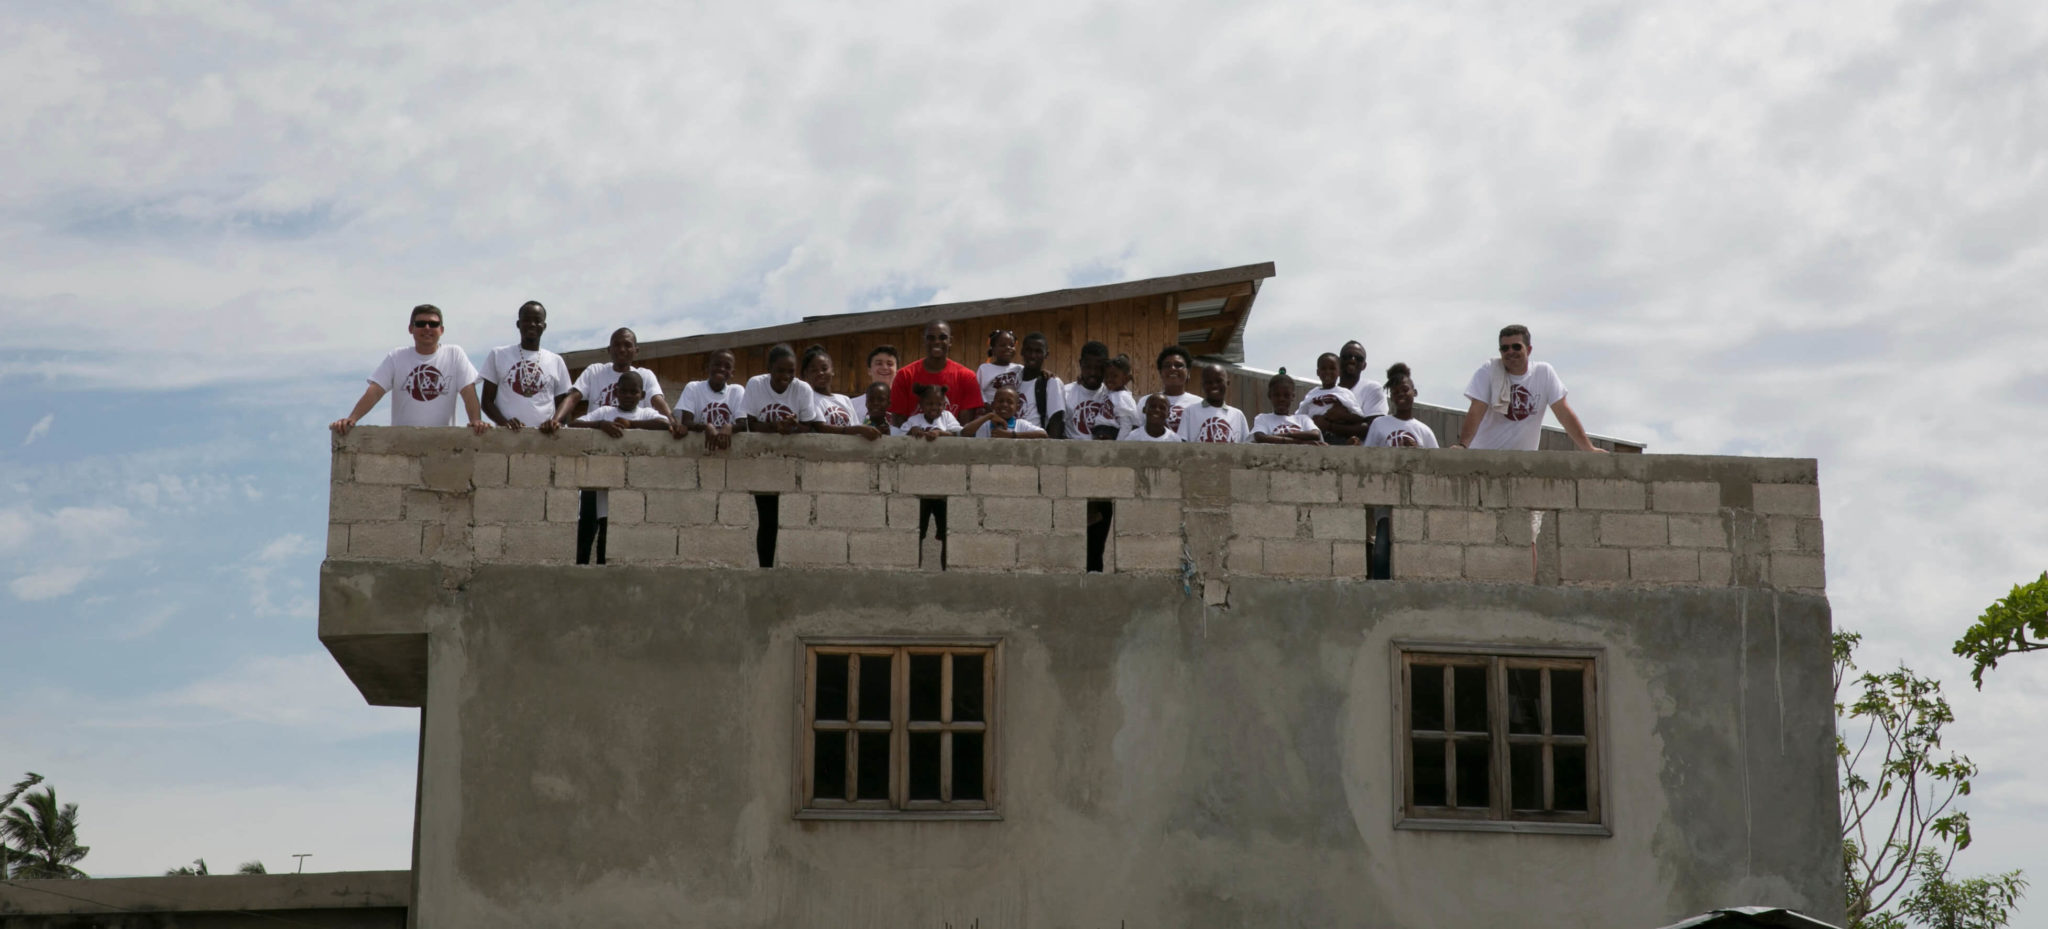 Some of our students and team on the roof of the Community Center.